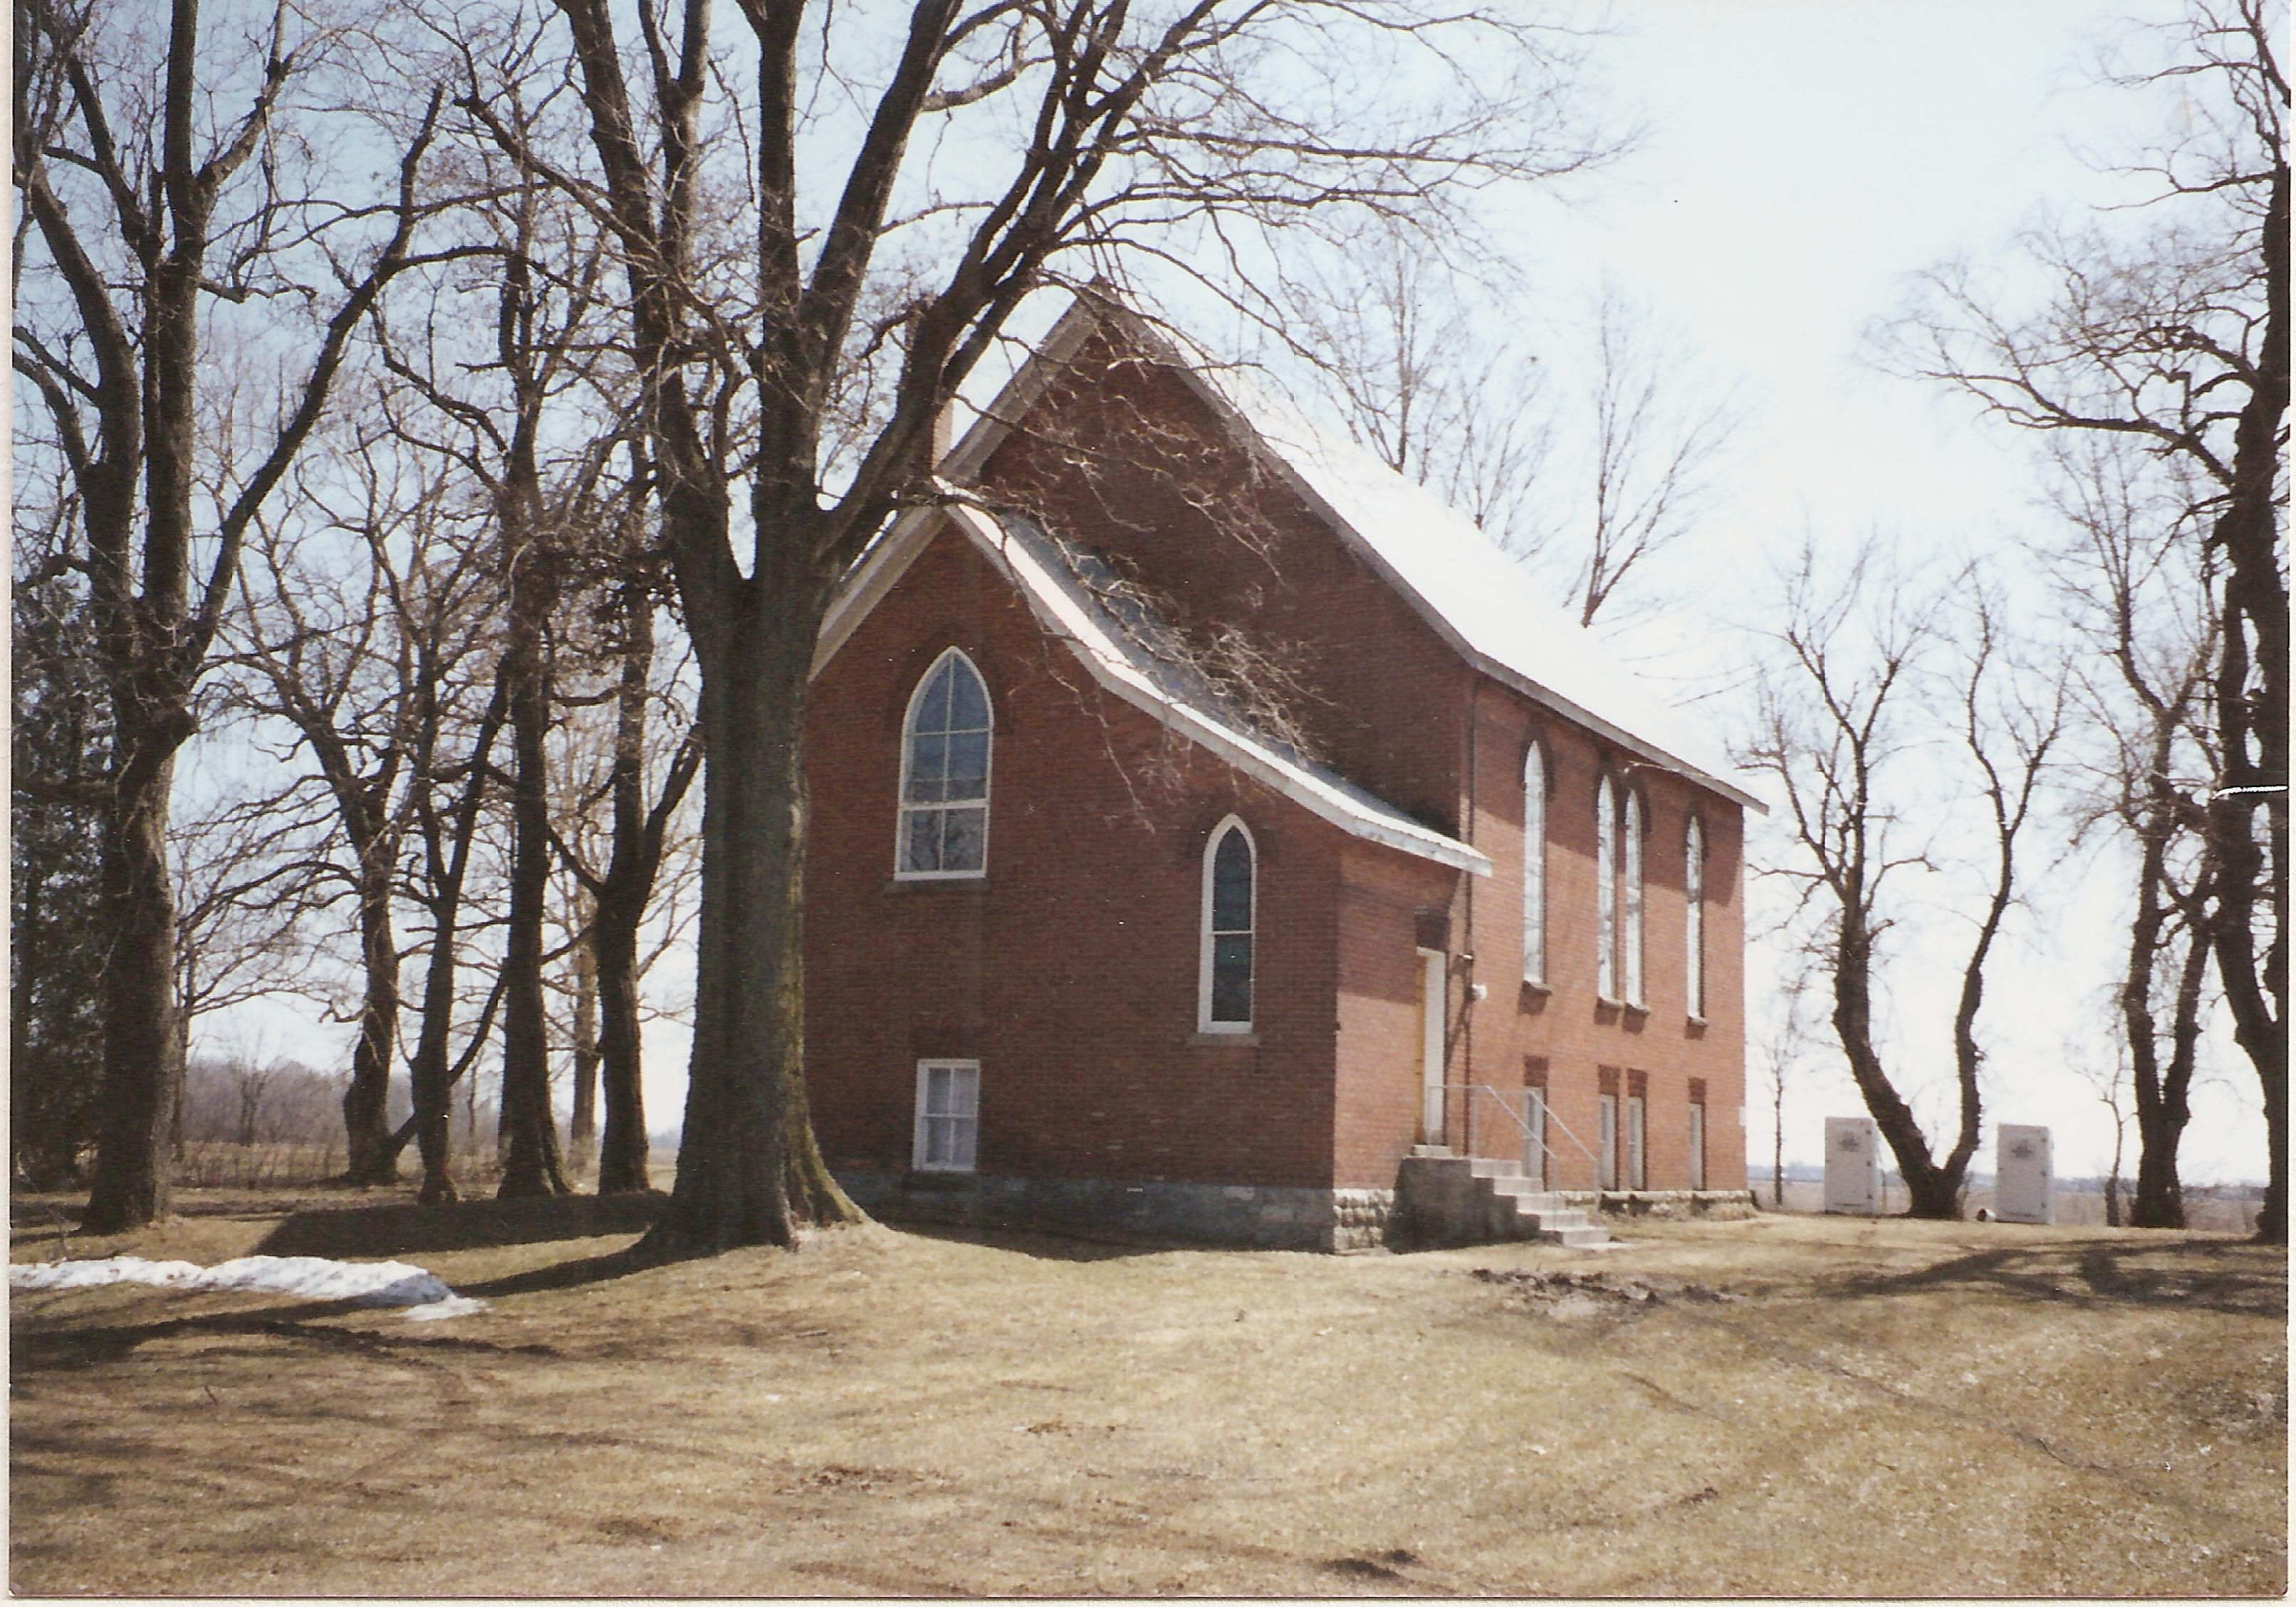 Old red brick former schoolhouse